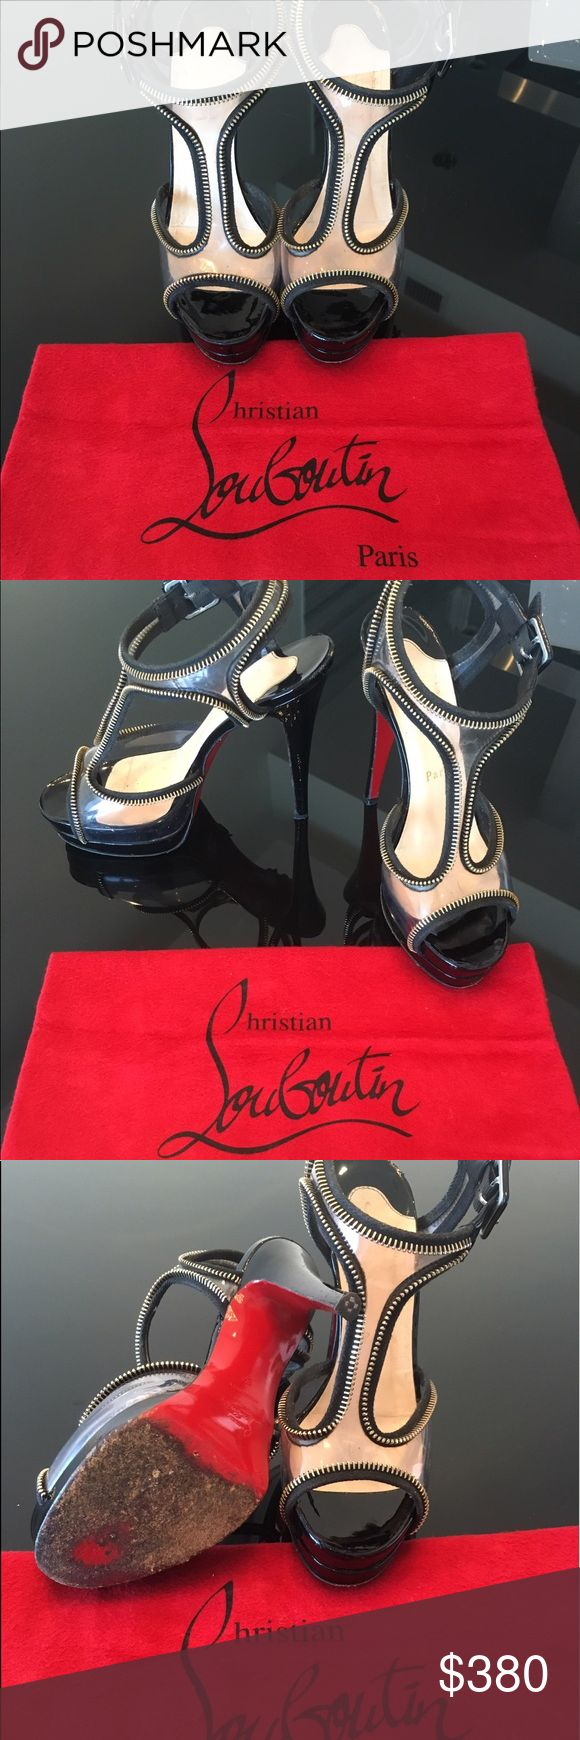 Authentic Christian Louboutin Ziparent Platforms Gorgeous Ziparent black platform sandals by a Christian Louboutin. Perfect for any night out on the town or to dress up jeans and a shirt. Zipper lined clear pvc straps with the signature red soles to complete the look. Signs of minor wear on the pvc straps. Heel height 140 mm. The soles have signs of wear throughout ( see pictures.) Dust Bag included. Christian Louboutin Shoes Platforms